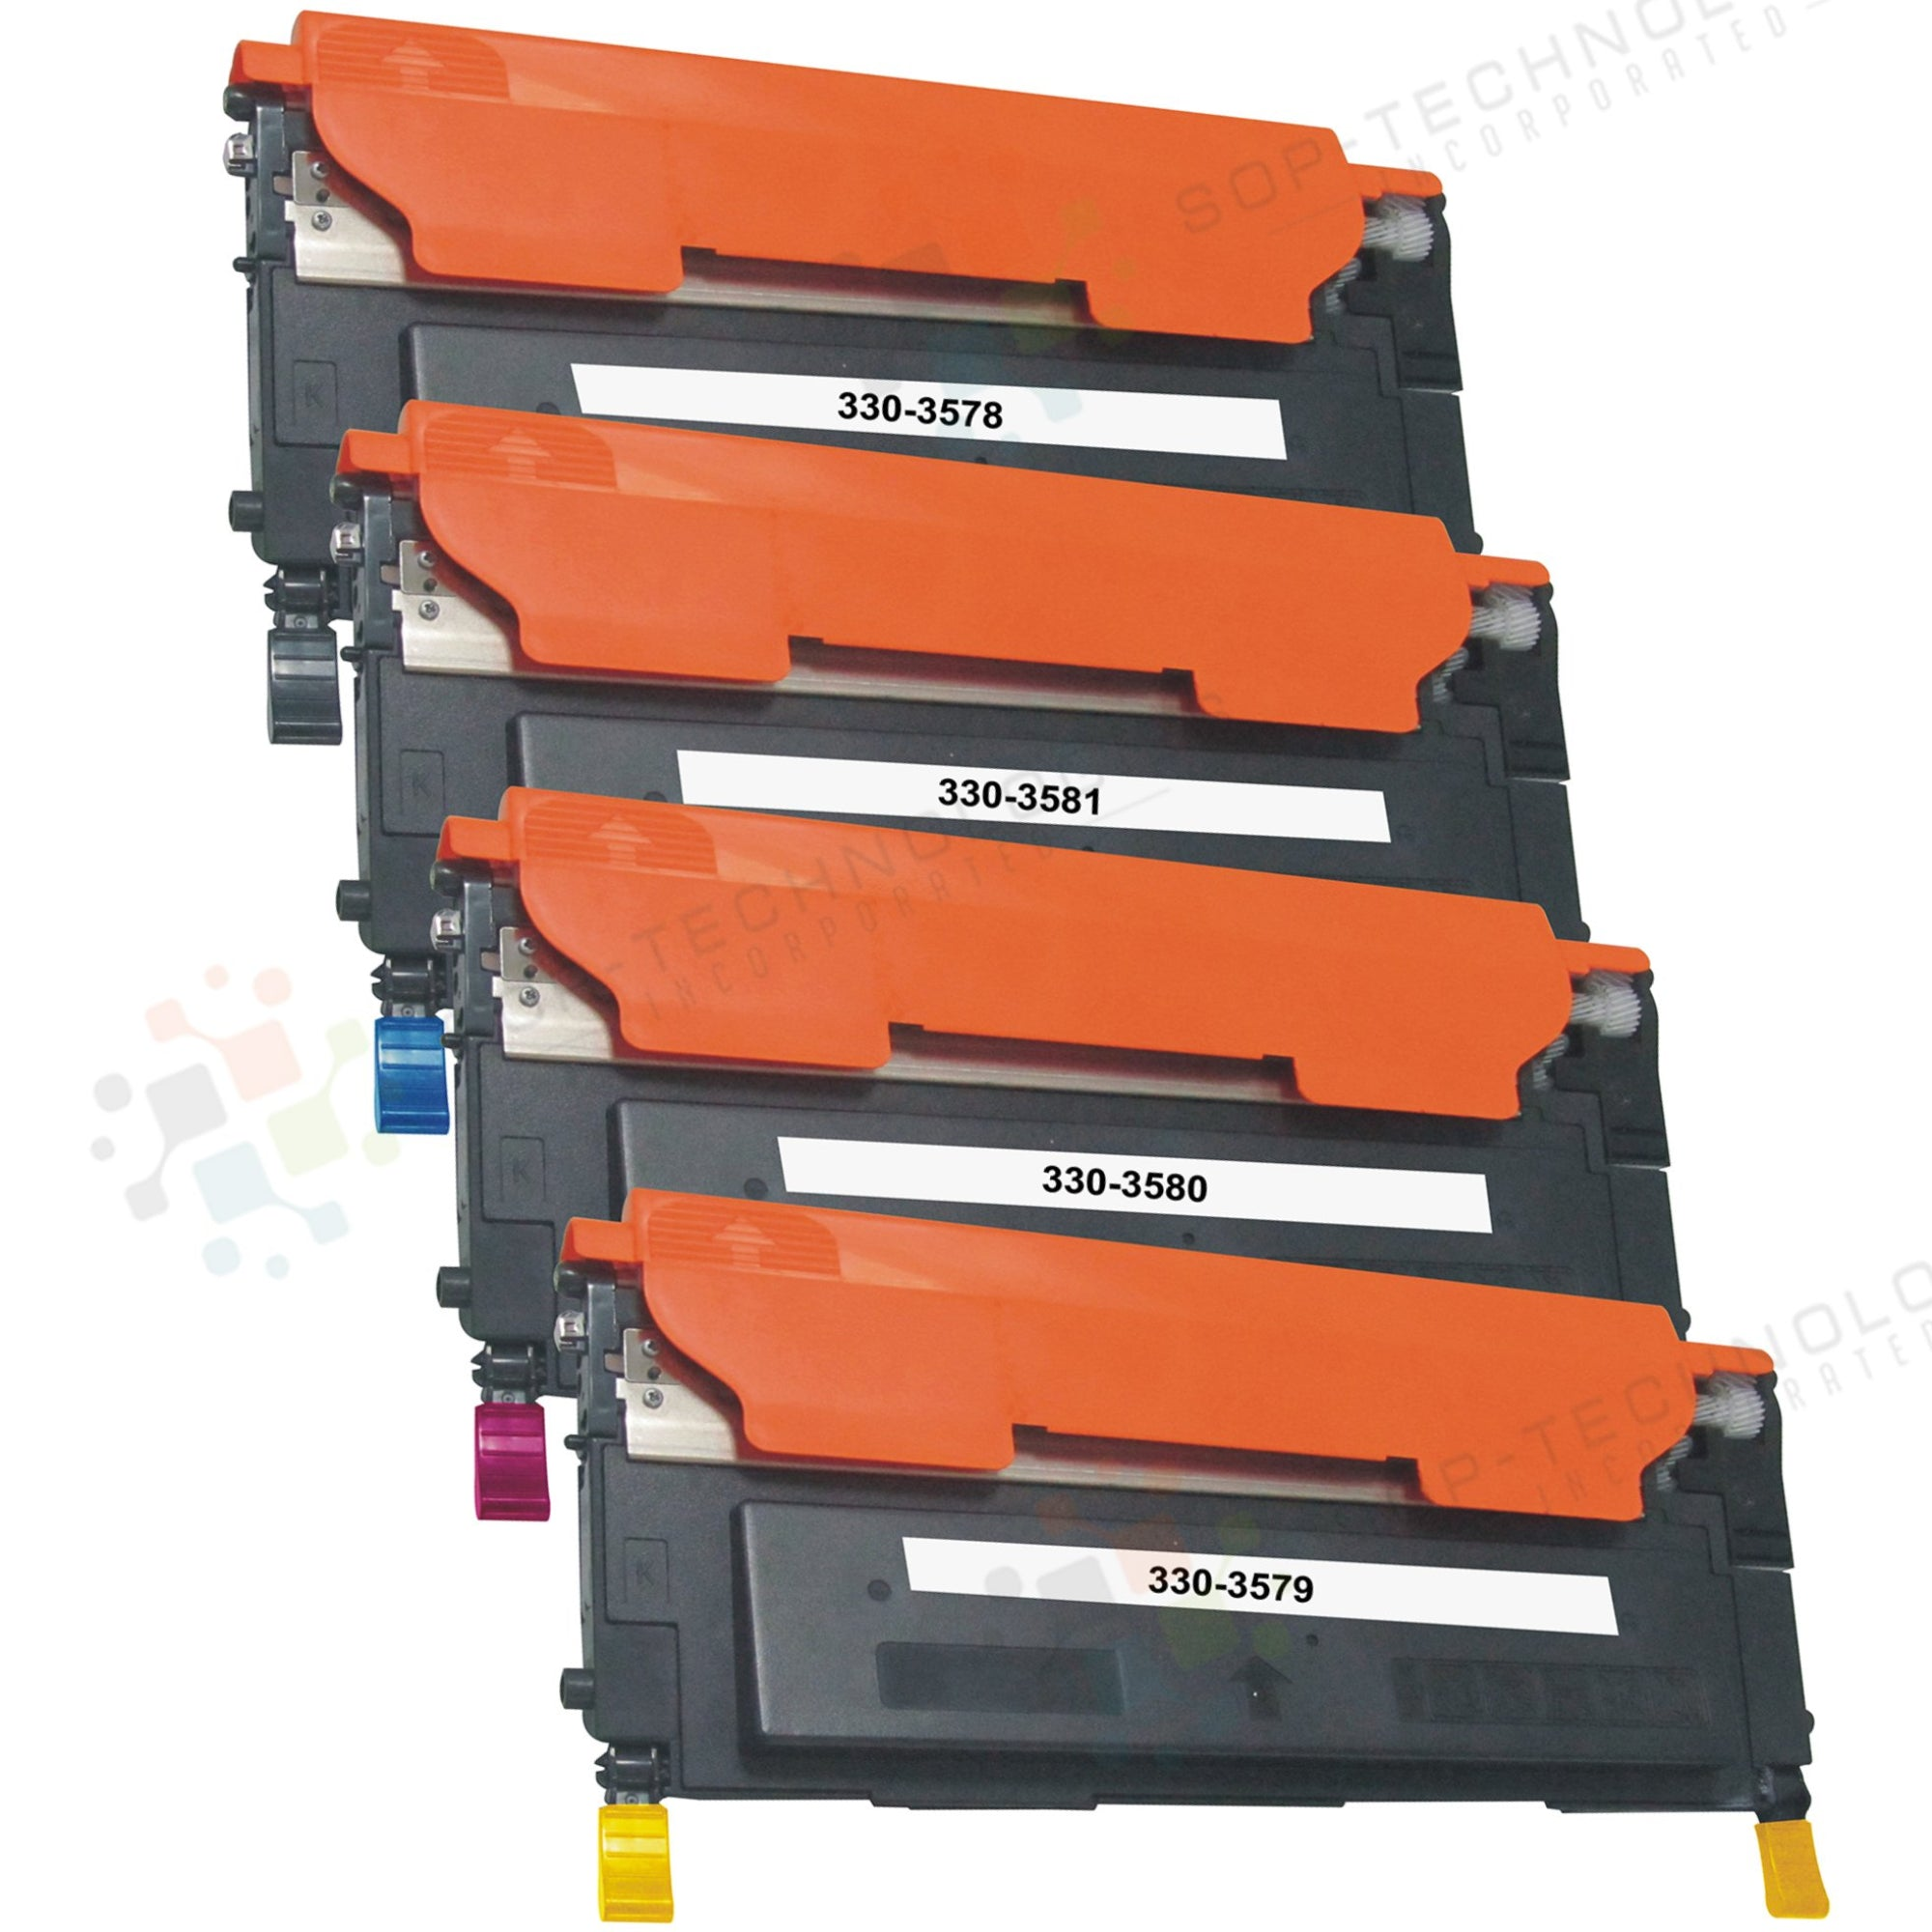 4 Pack Toner Cartridge for Dell 1230C - SOP-TECHNOLOGIES, INC.